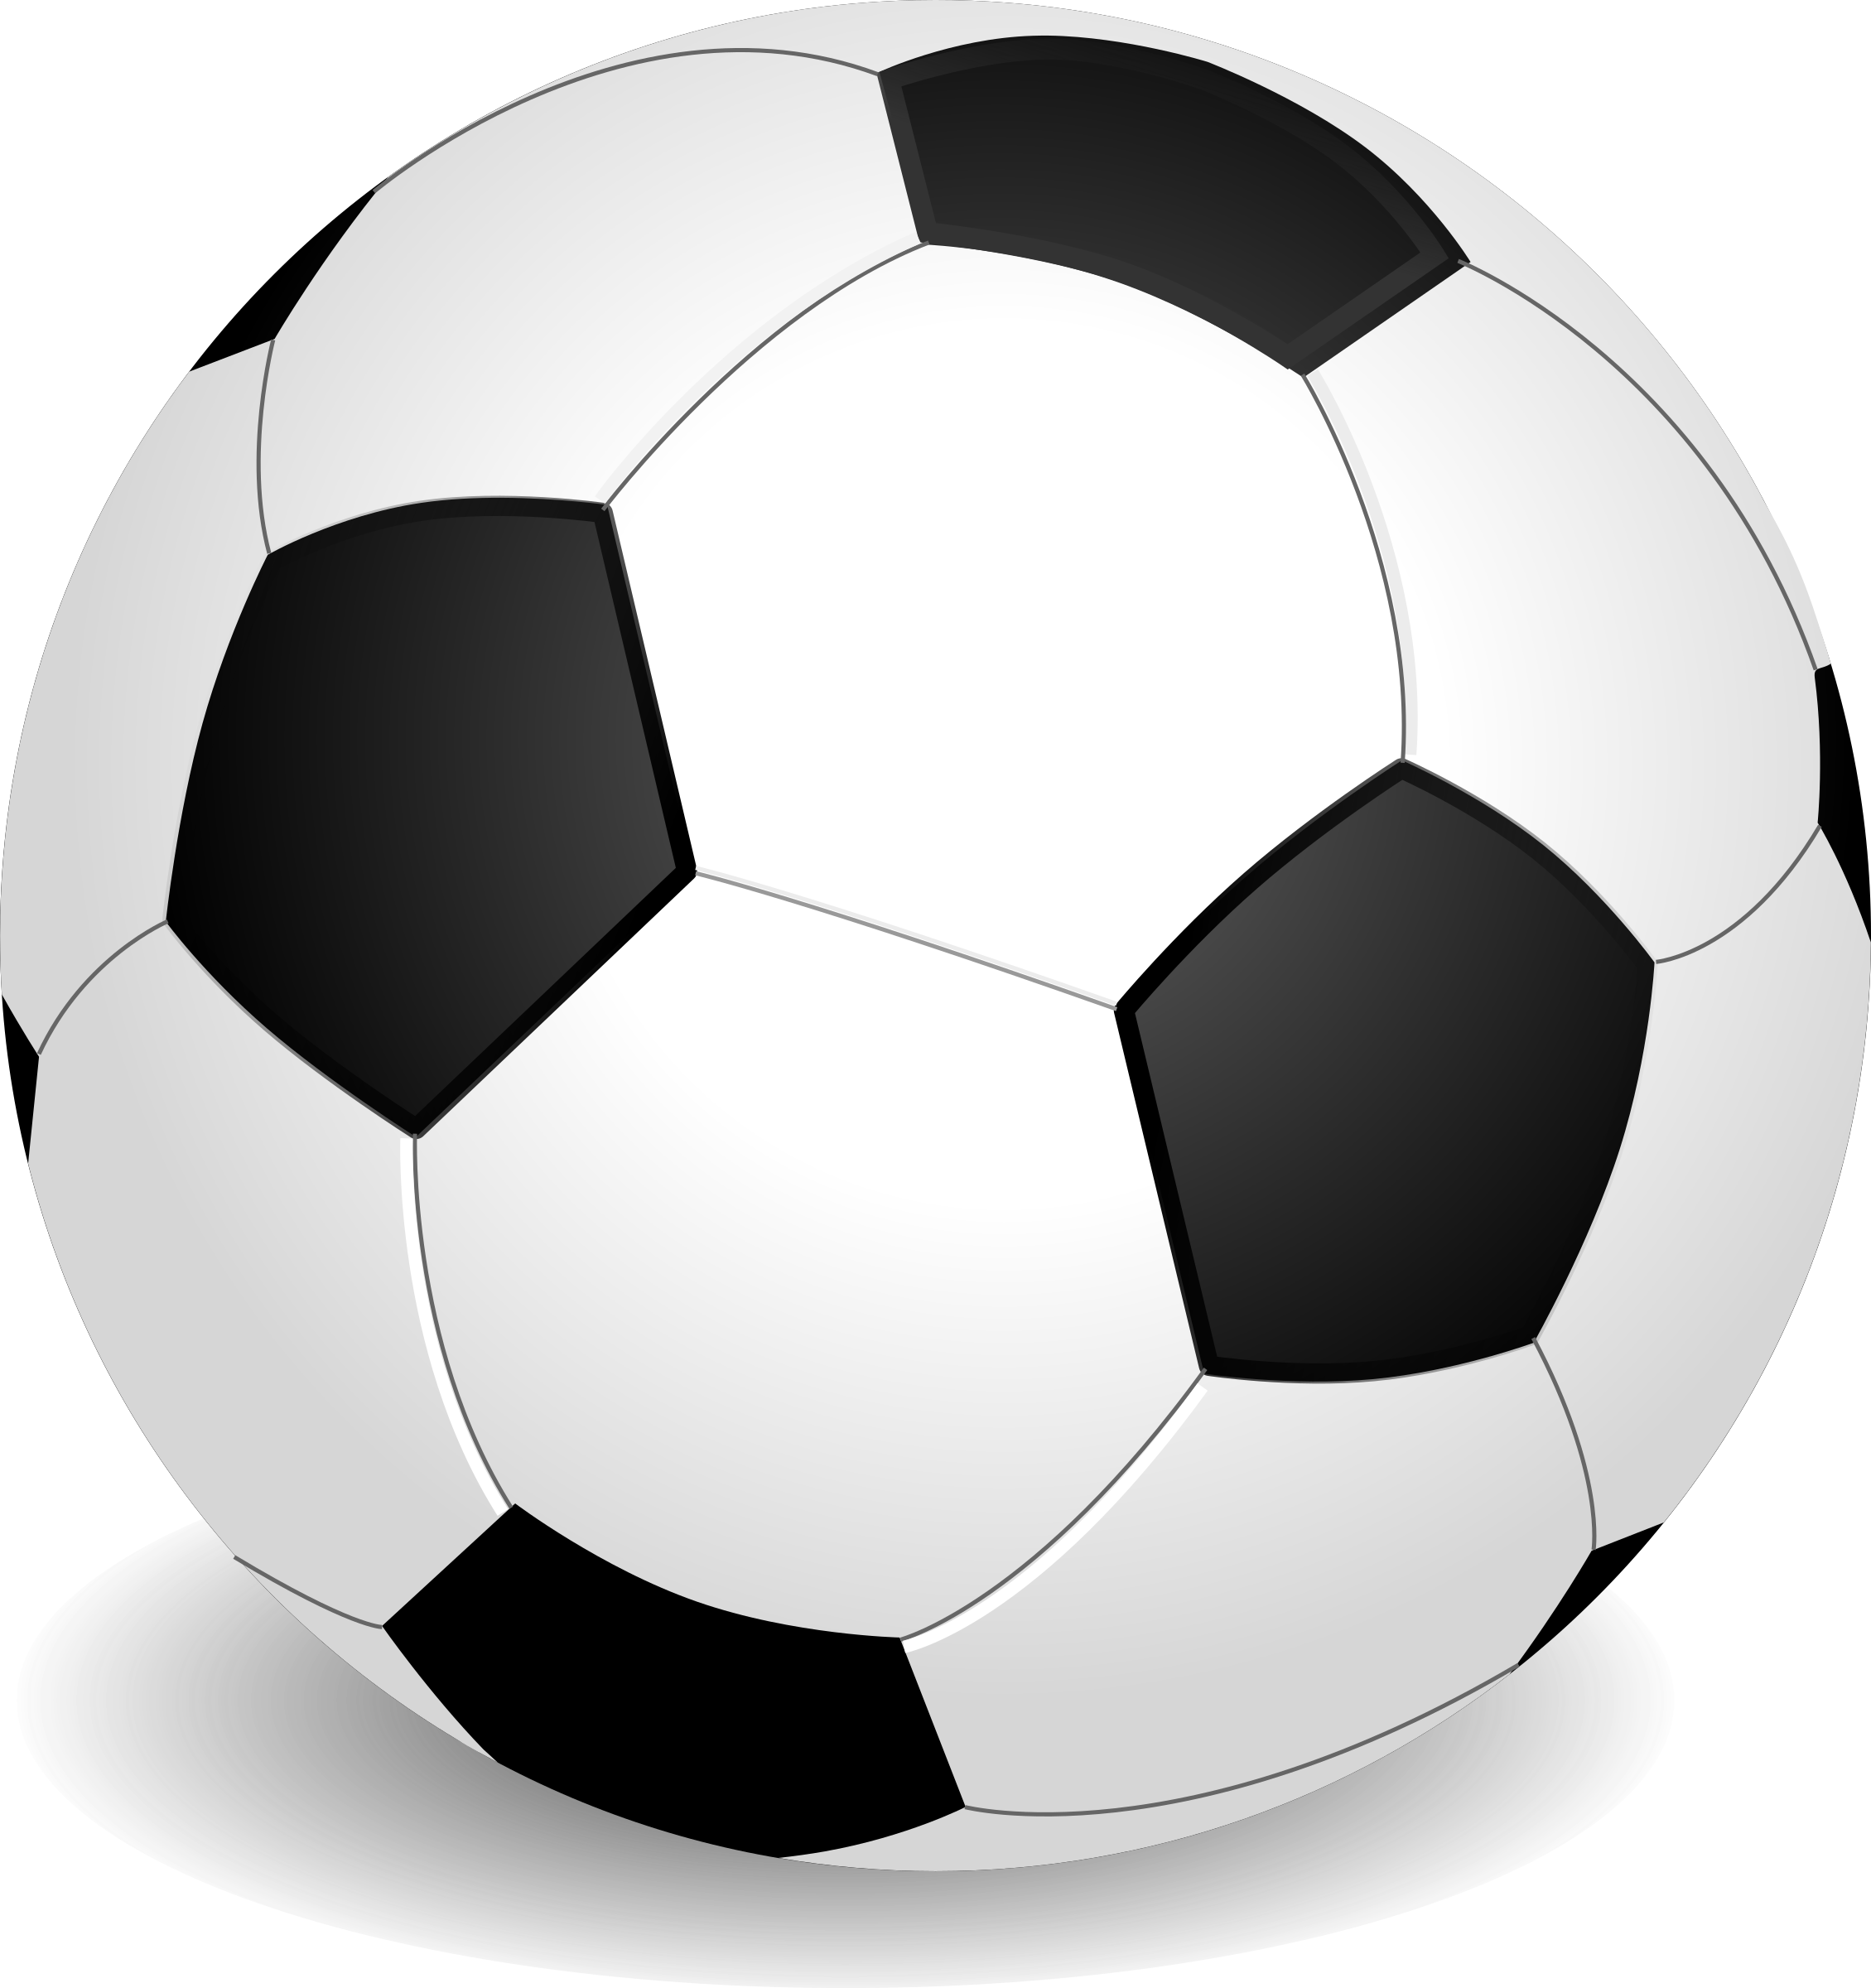 Volleyball clip old soccer ball. Football by flomar this